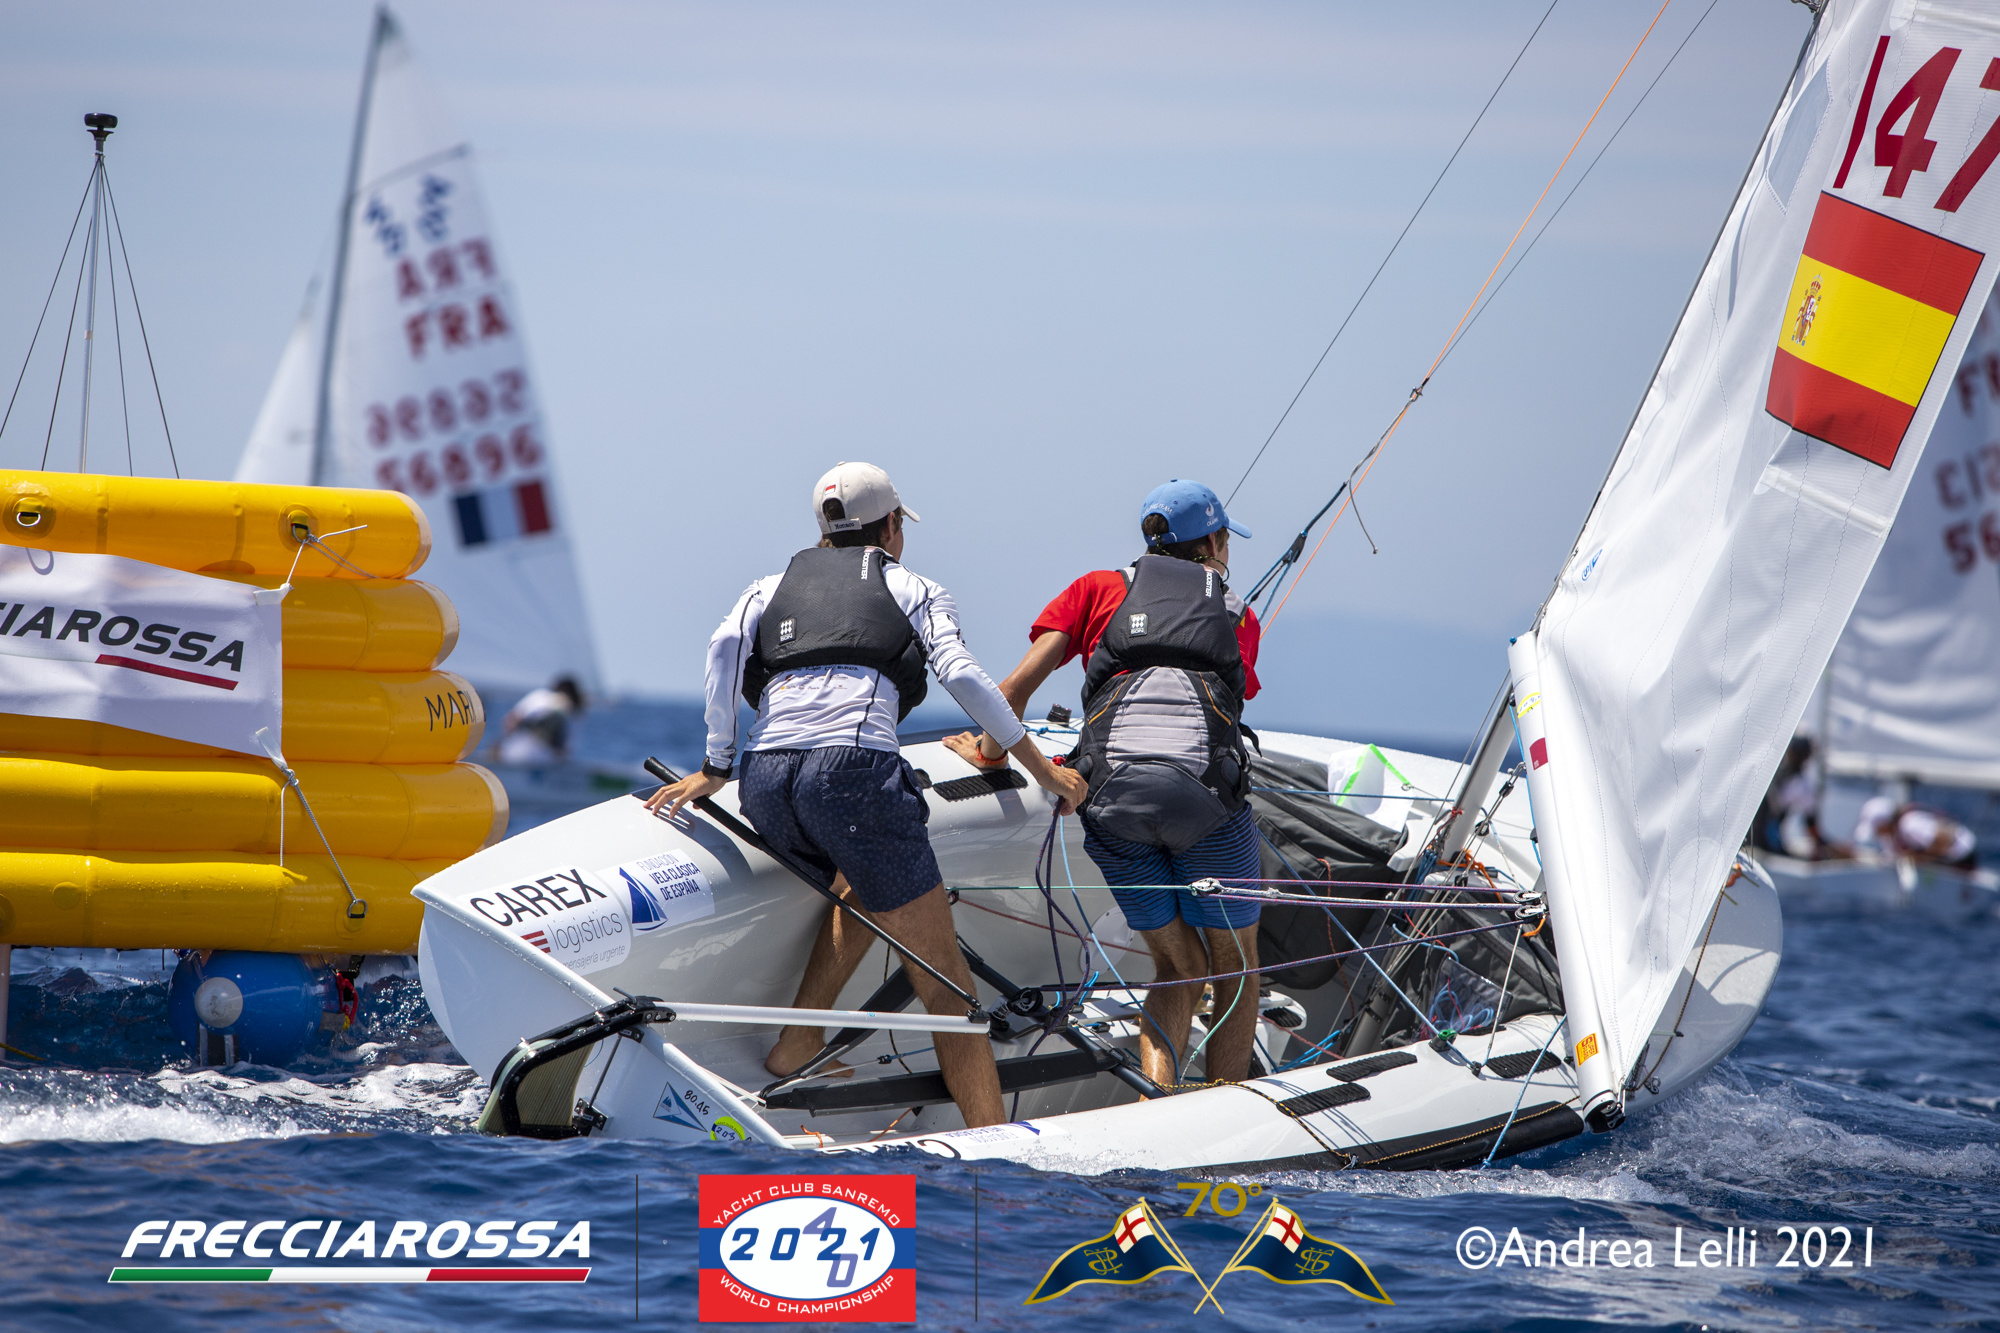 Only 1 race sailed today in light wind conditions at the 2021 420 Worlds